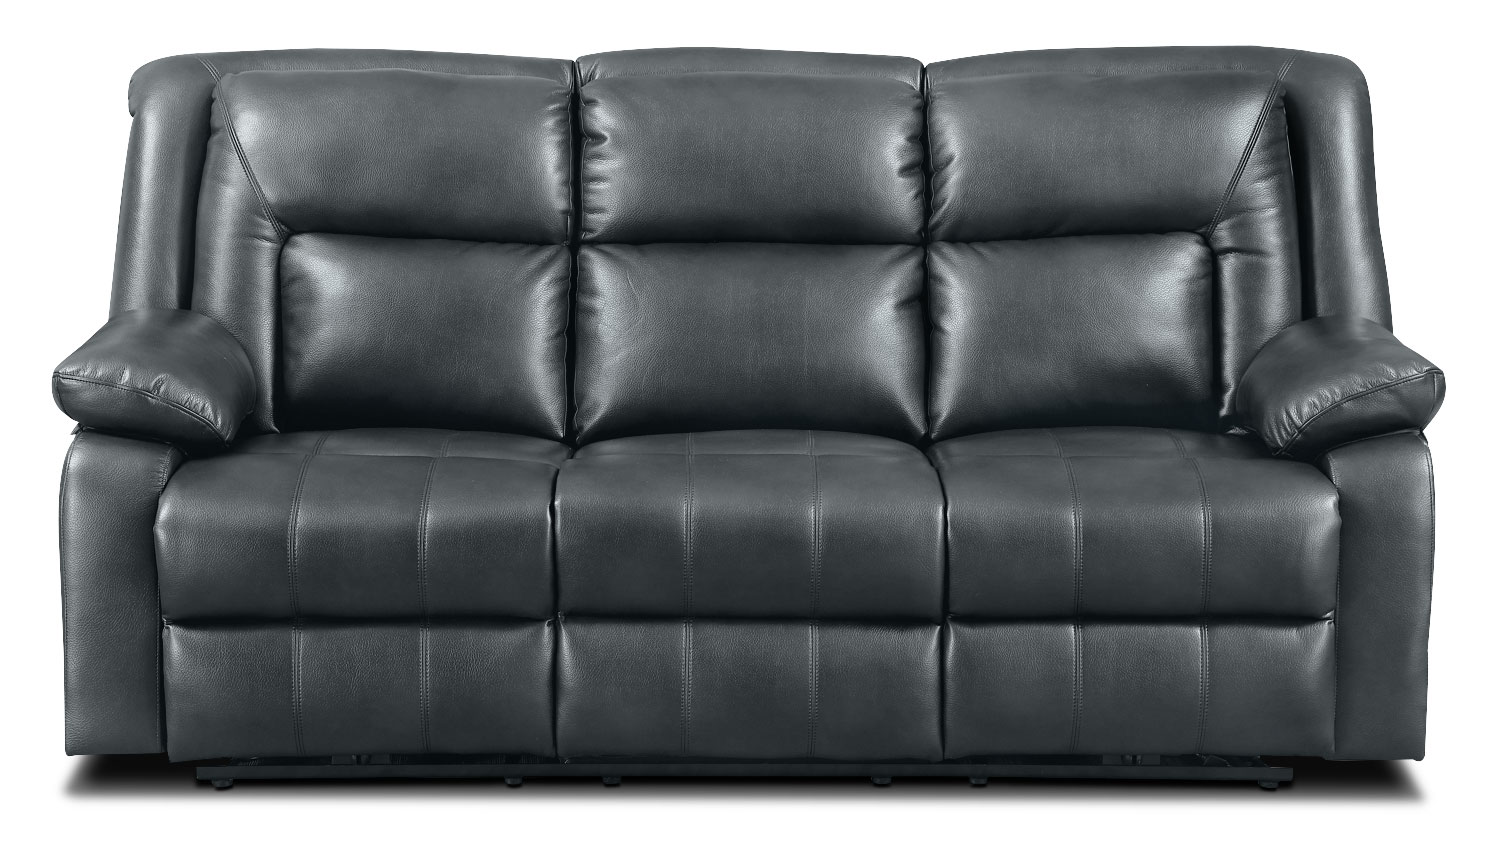 Living Room Furniture - Blane Leather-Like Power Reclining Sofa – Graphite